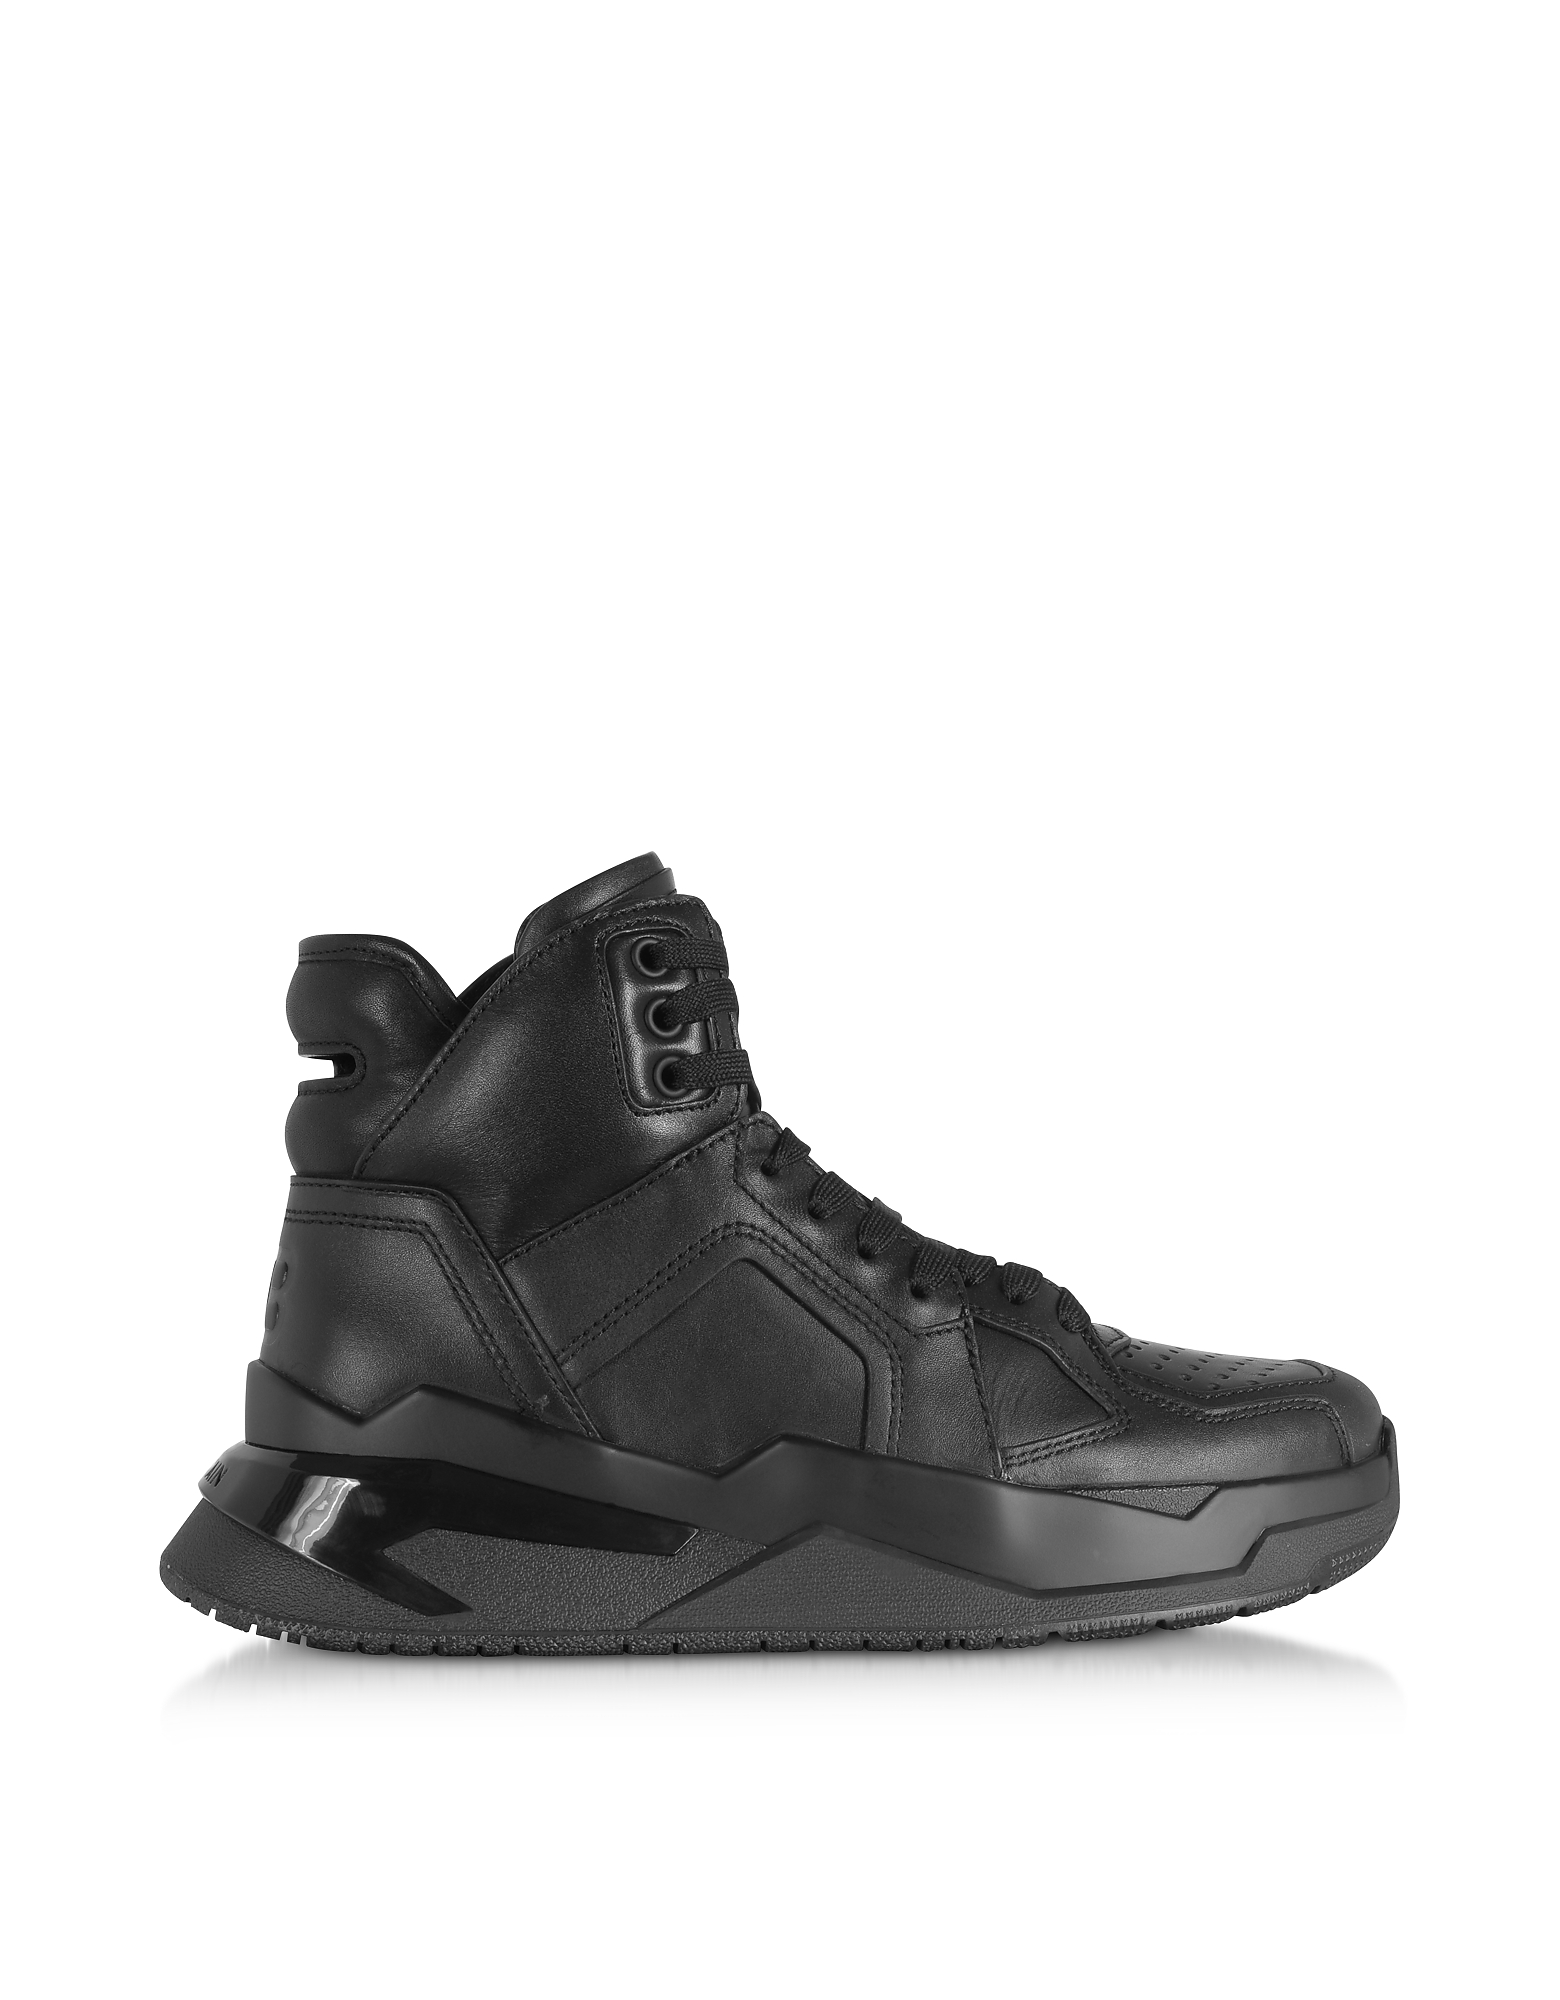 Balmain Designer Shoes, Black B-Ball Calfskin Leather Sneakers